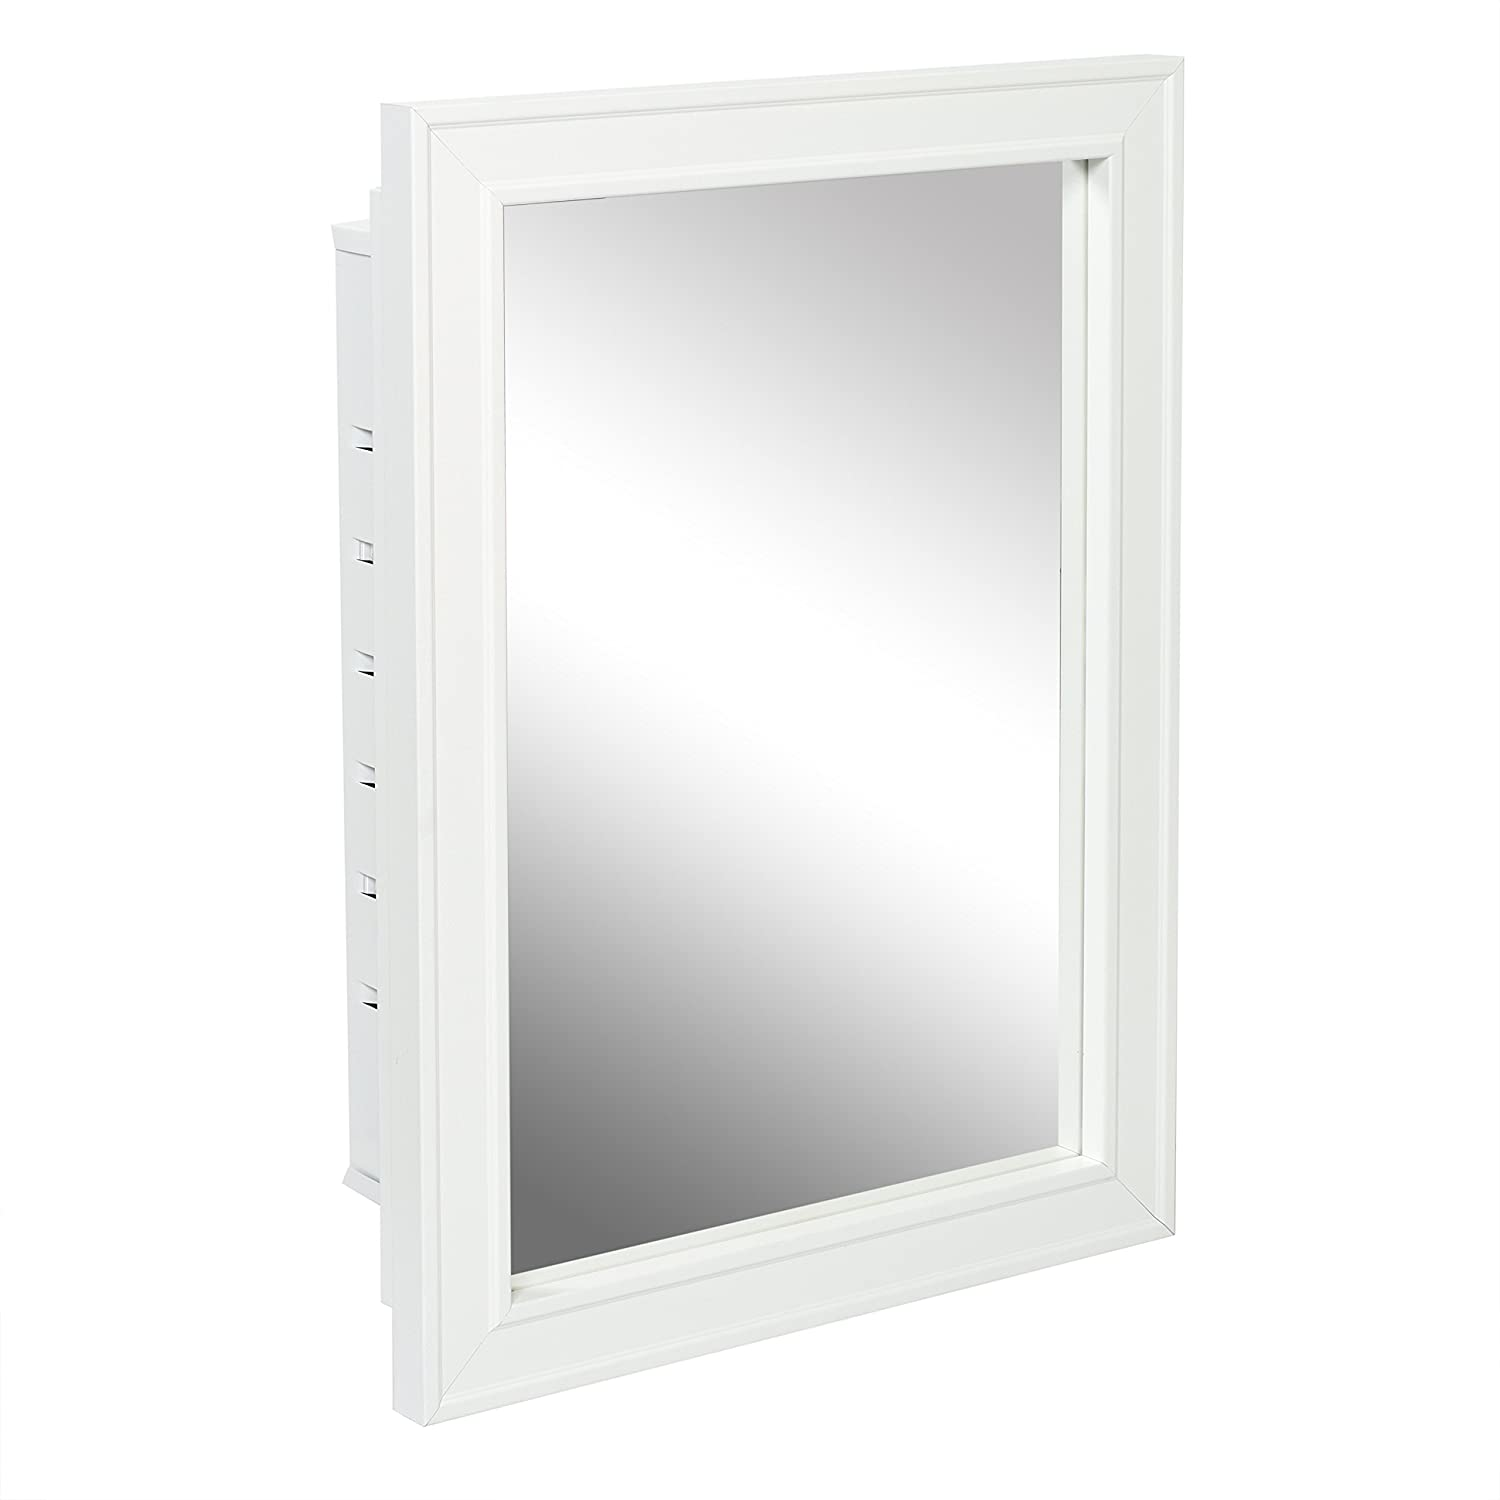 Amazon.com: American Pride G9612RPR1 Recessed White Raised Panel ...